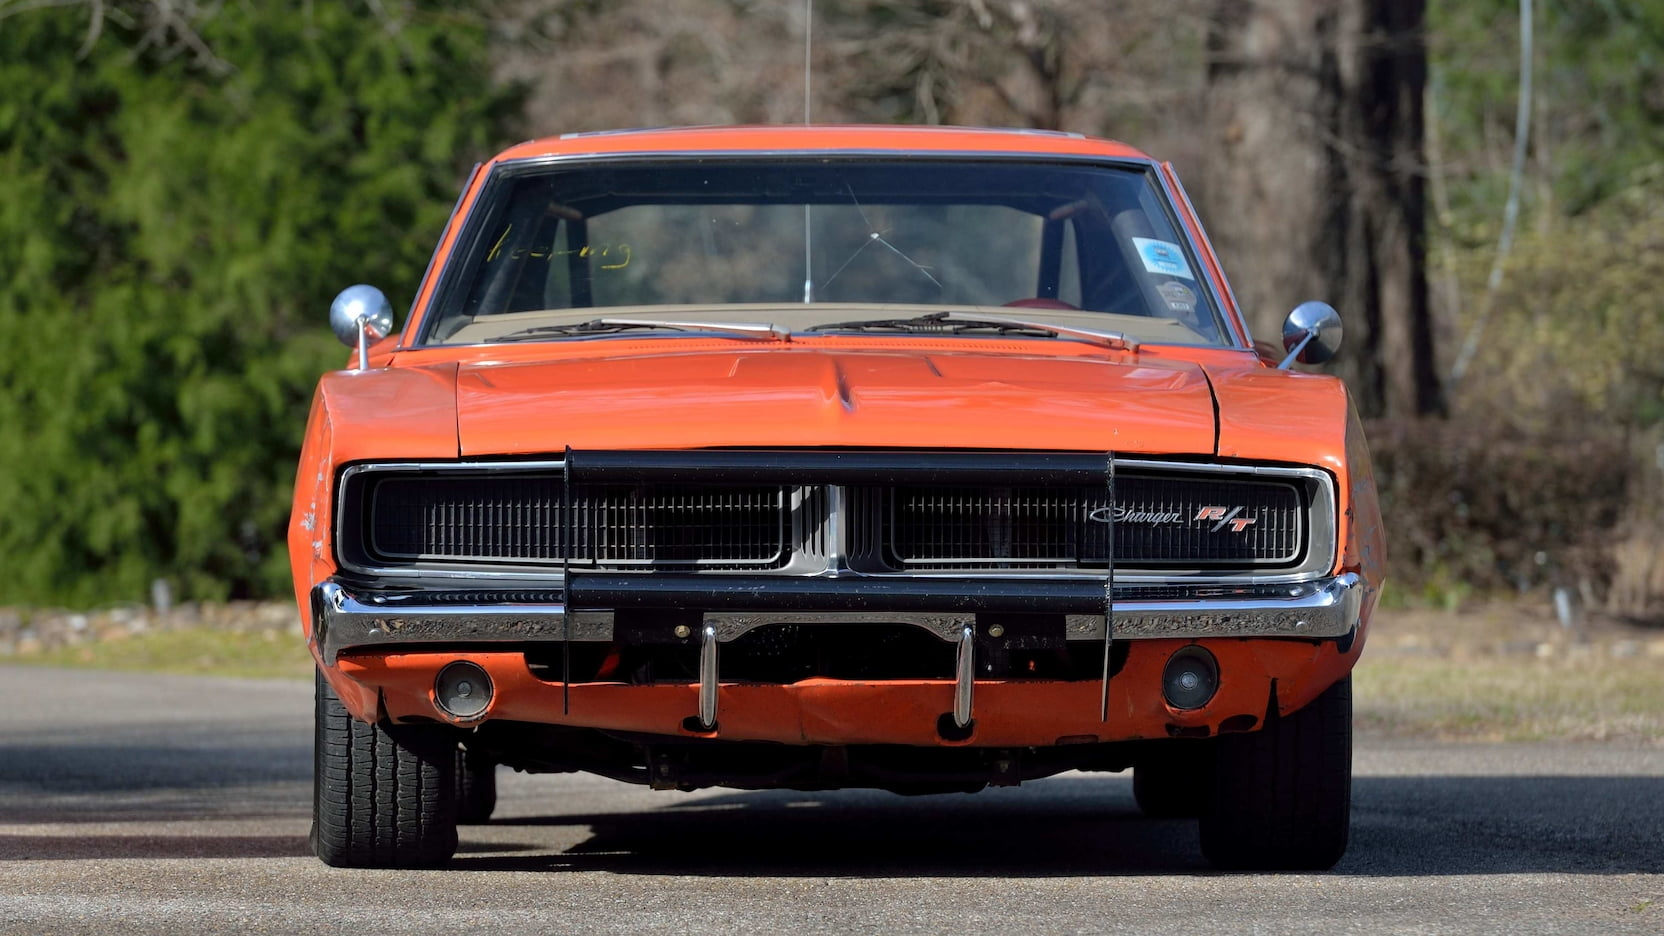 1969 Dodge Charger General Lee Stunt Car front